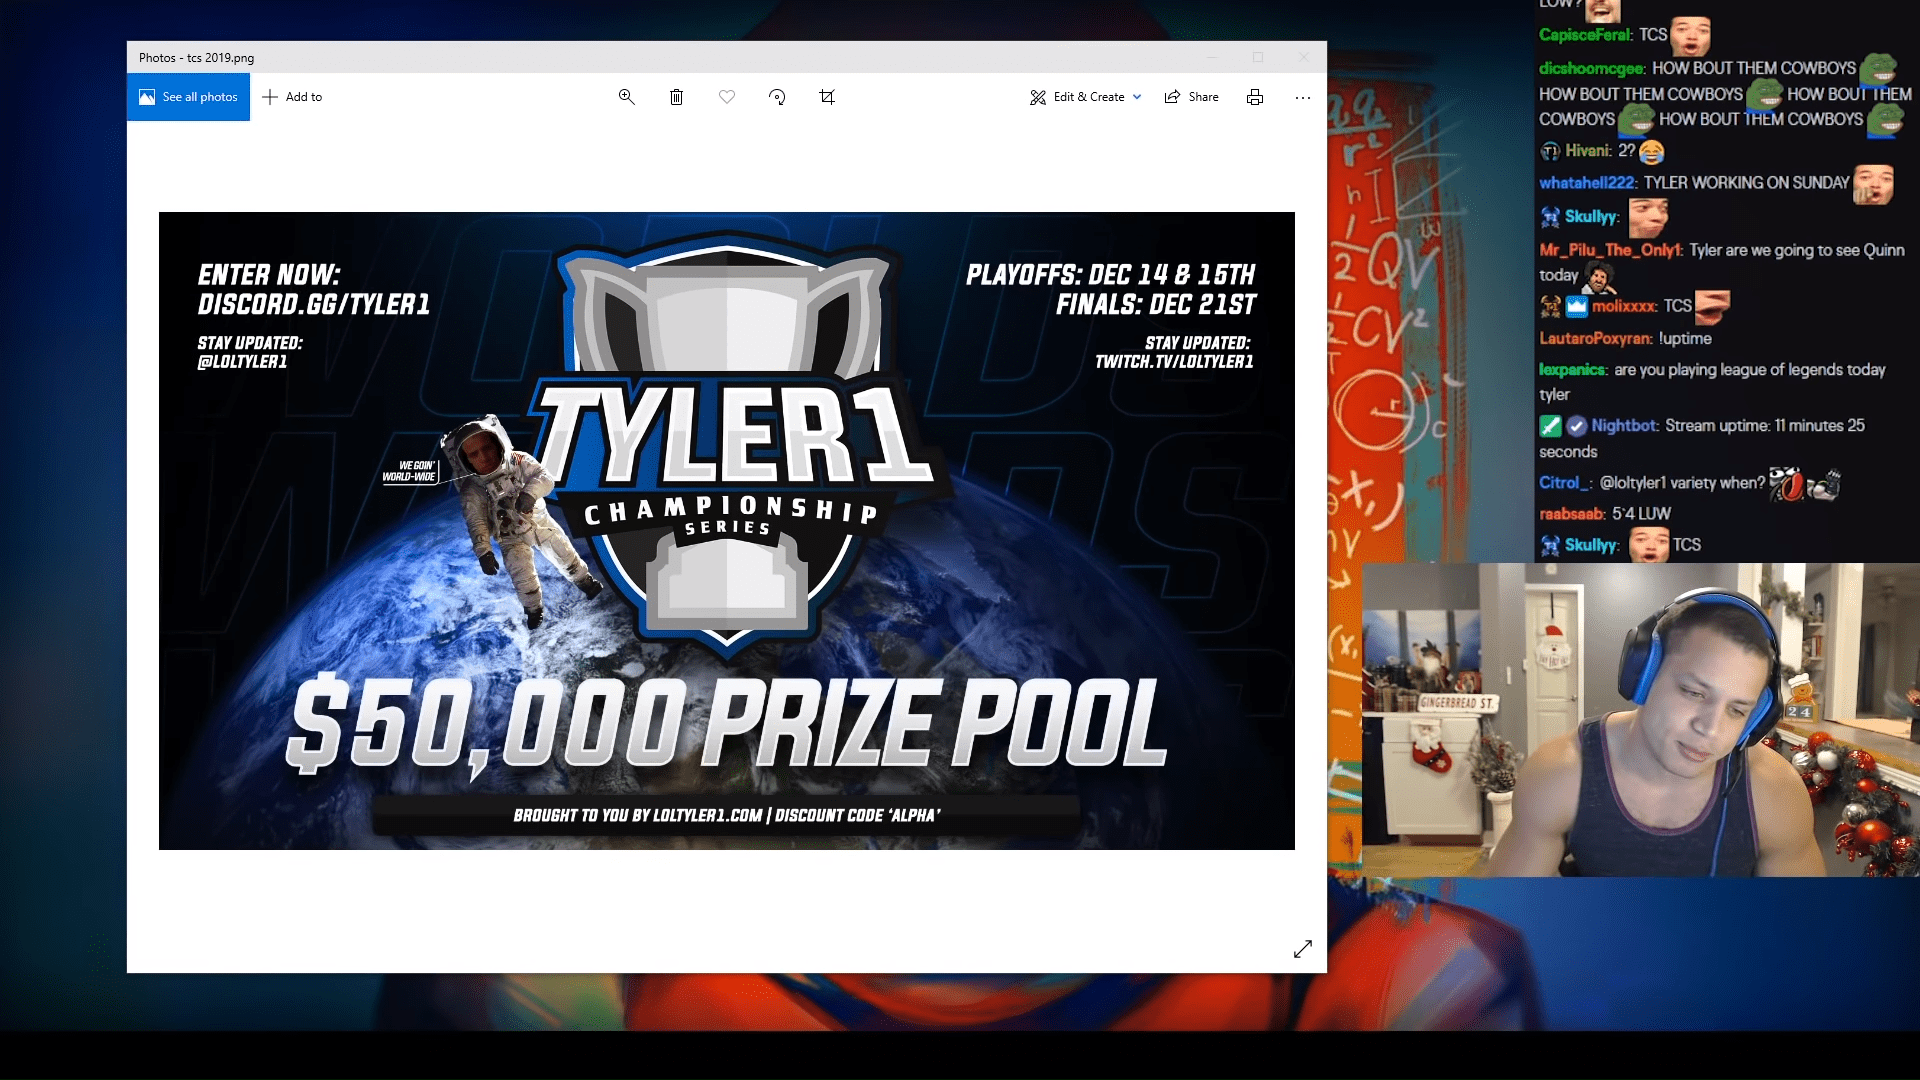 Tyler1 Announces Qualified Teams For Tyler1 Championship Series 2019 In League Of Legends